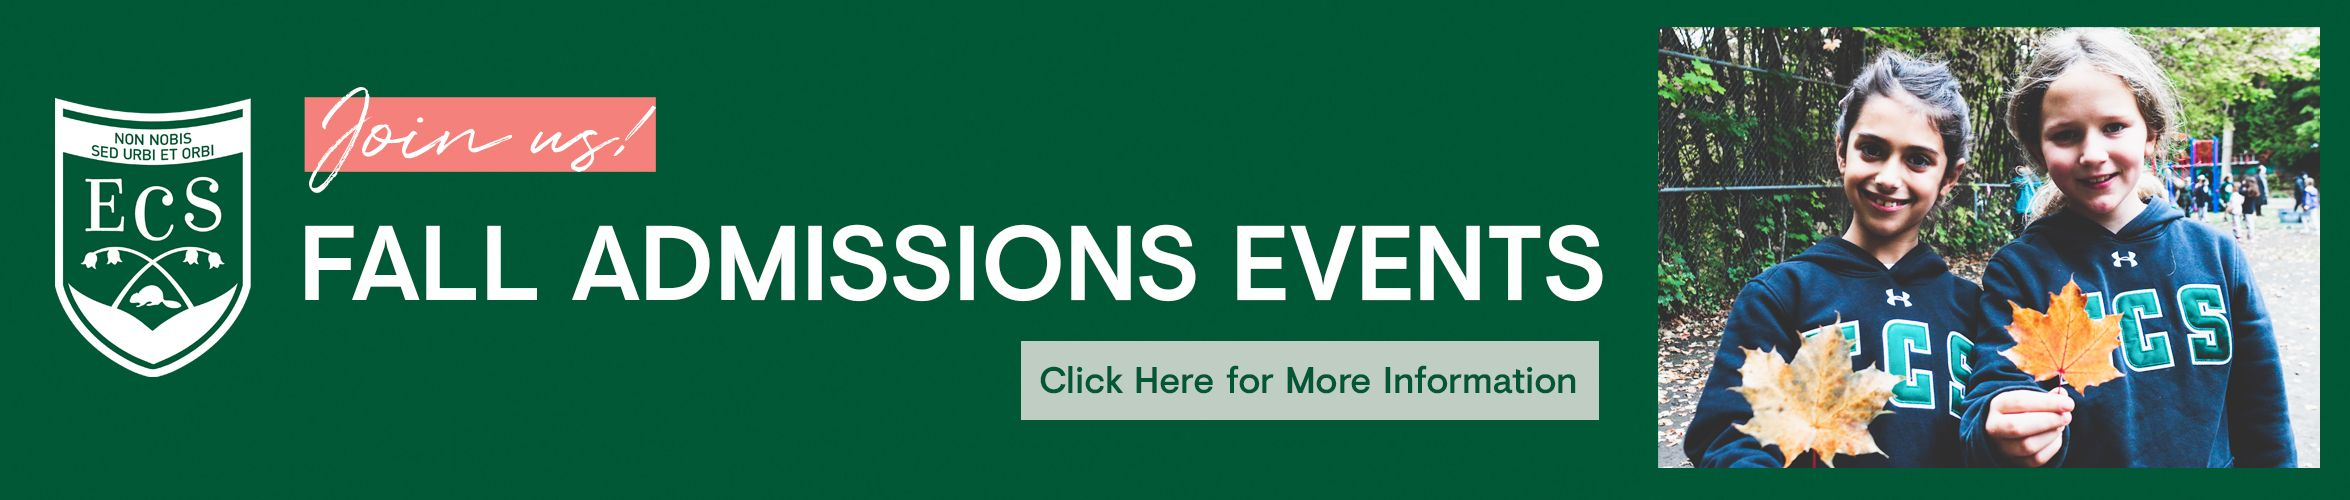 Join Us - Fall Admissions Events